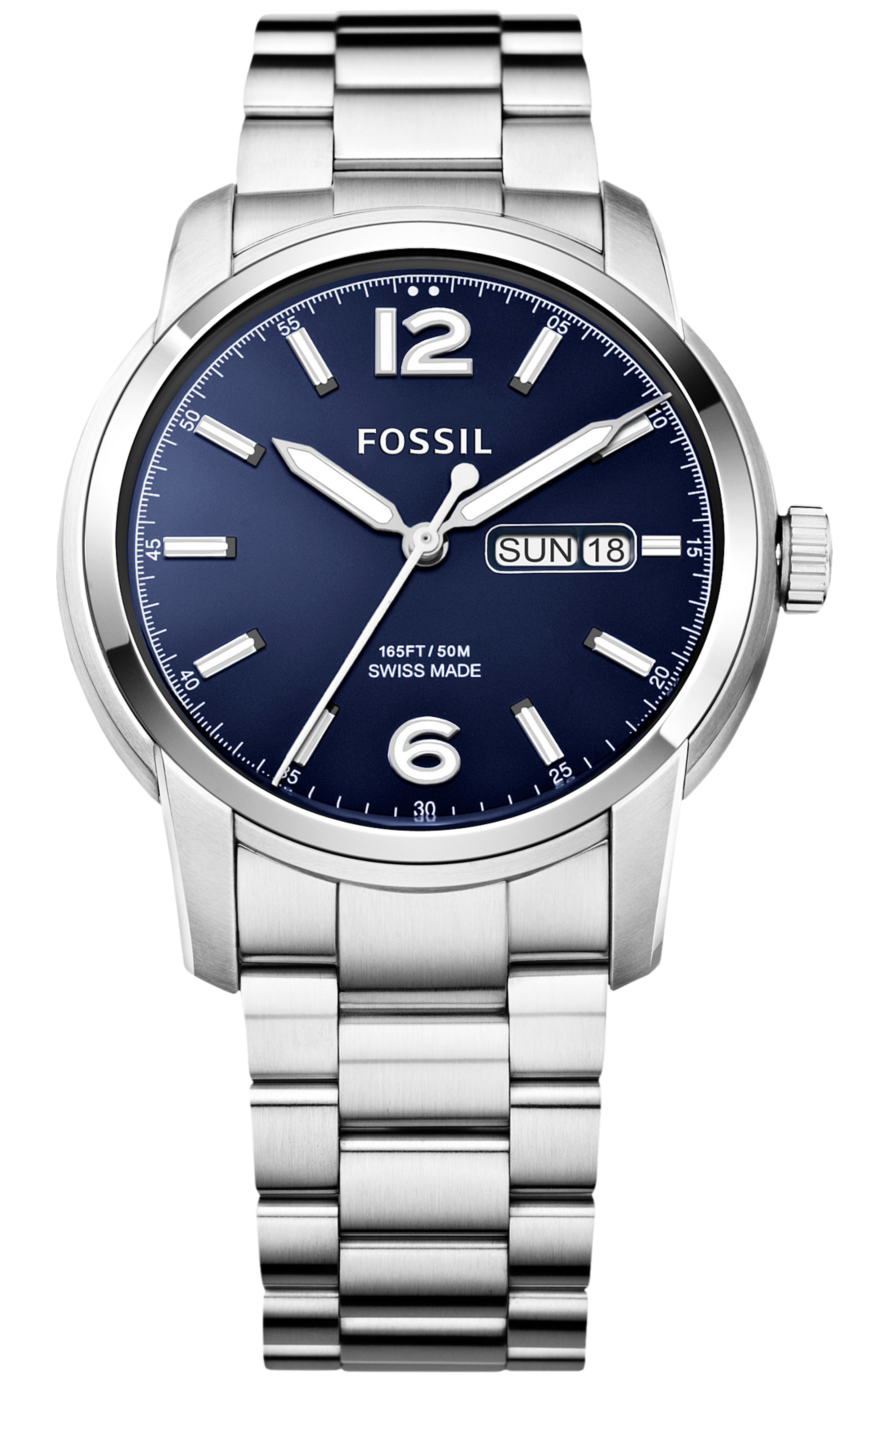 804507fa37f Fossil Swiss Made Day Date Stainless Steel Watch  695